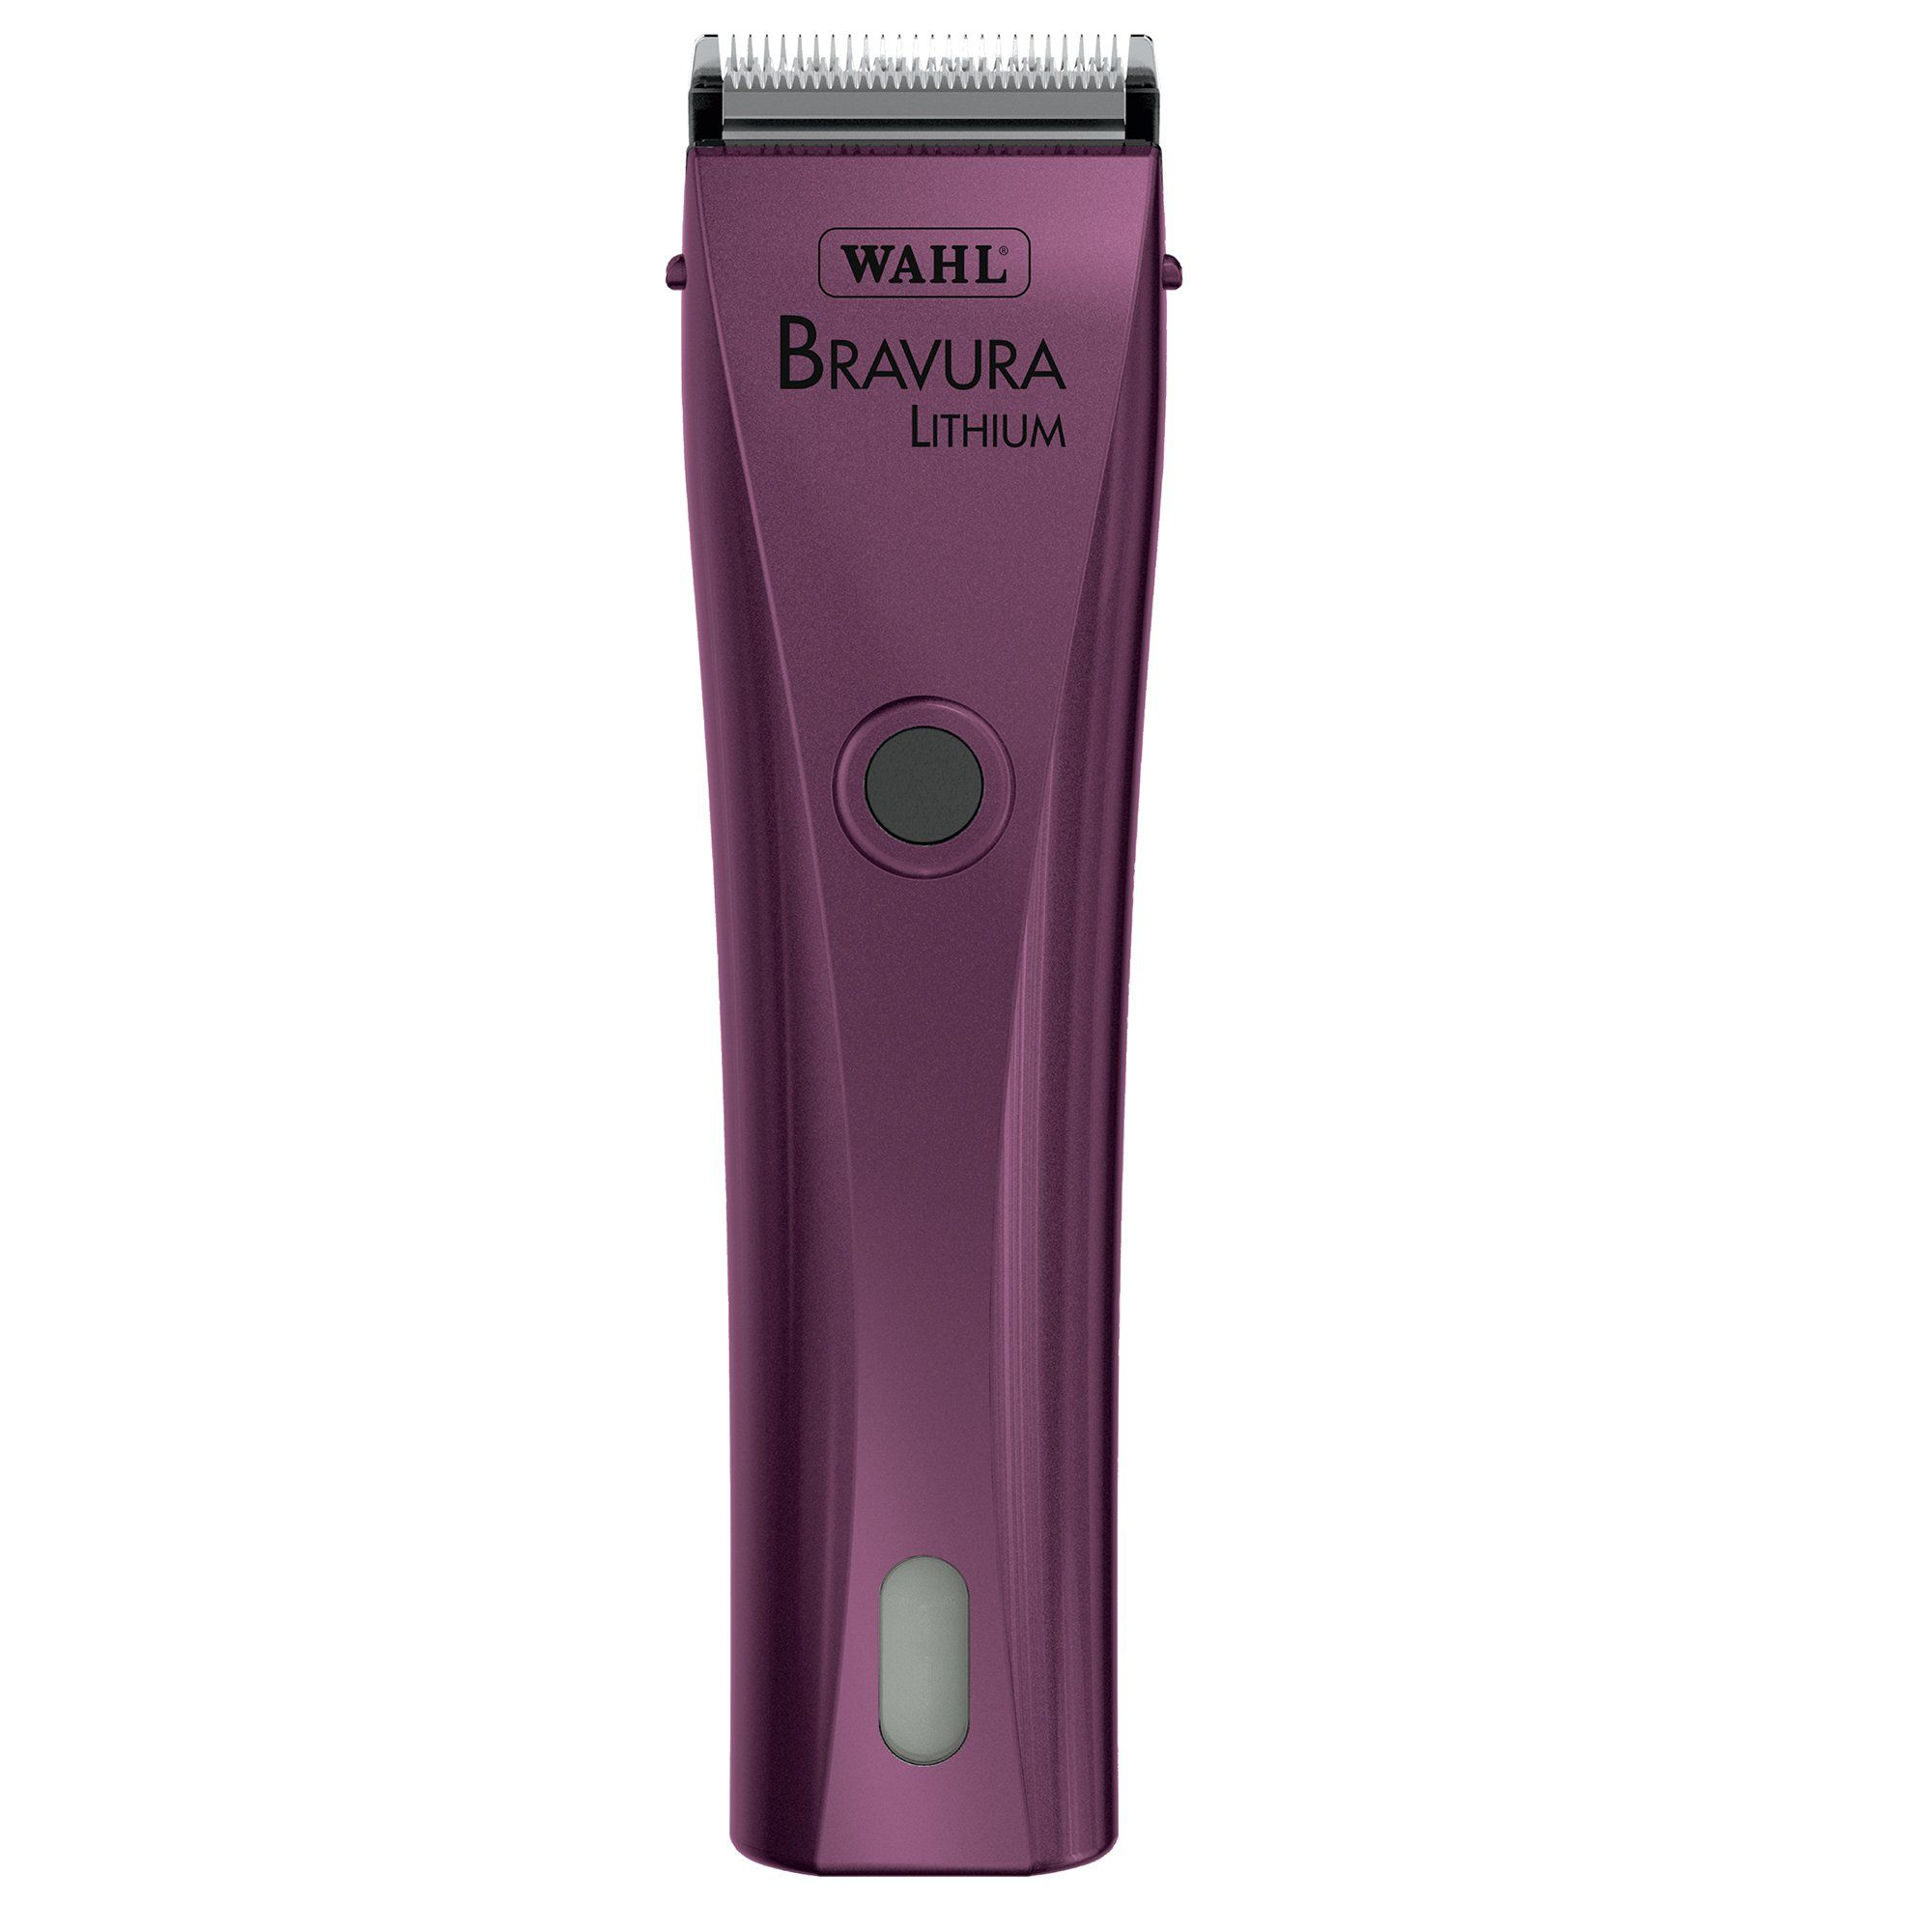 Wahl Professional Animal Bravura Lithium Clipper Ad Animal Affiliate Professional Wahl Clipper Dog Clippers Wahl Dog Grooming Supplies